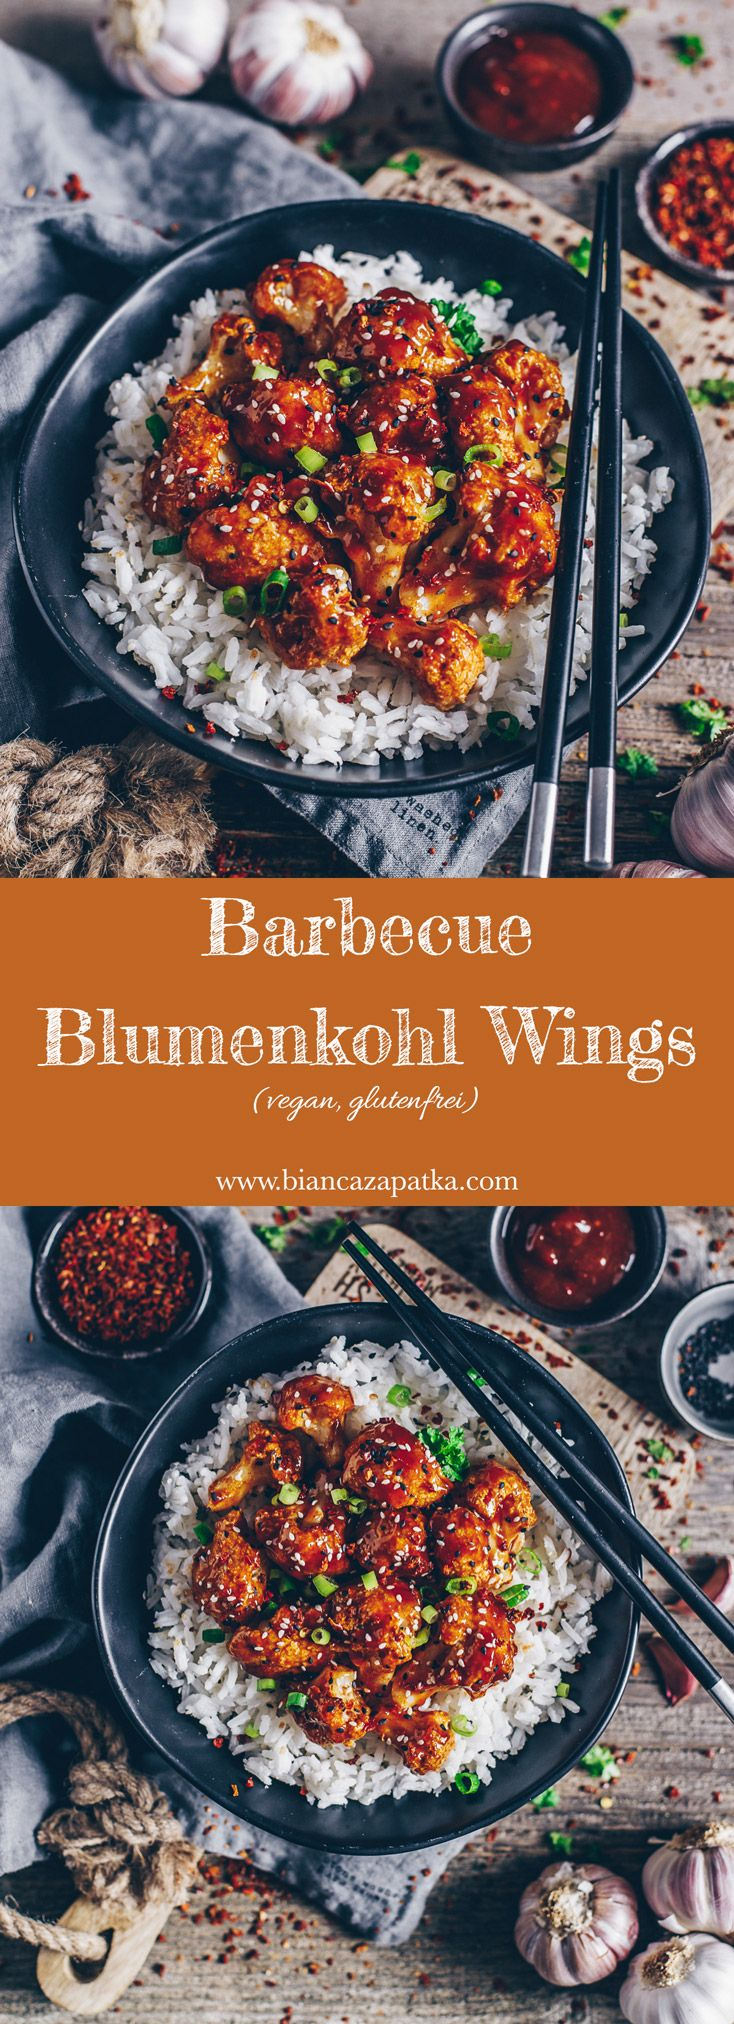 Barbecue Blumenkohl Wings (vegan + glutenfrei) #vegetariandish